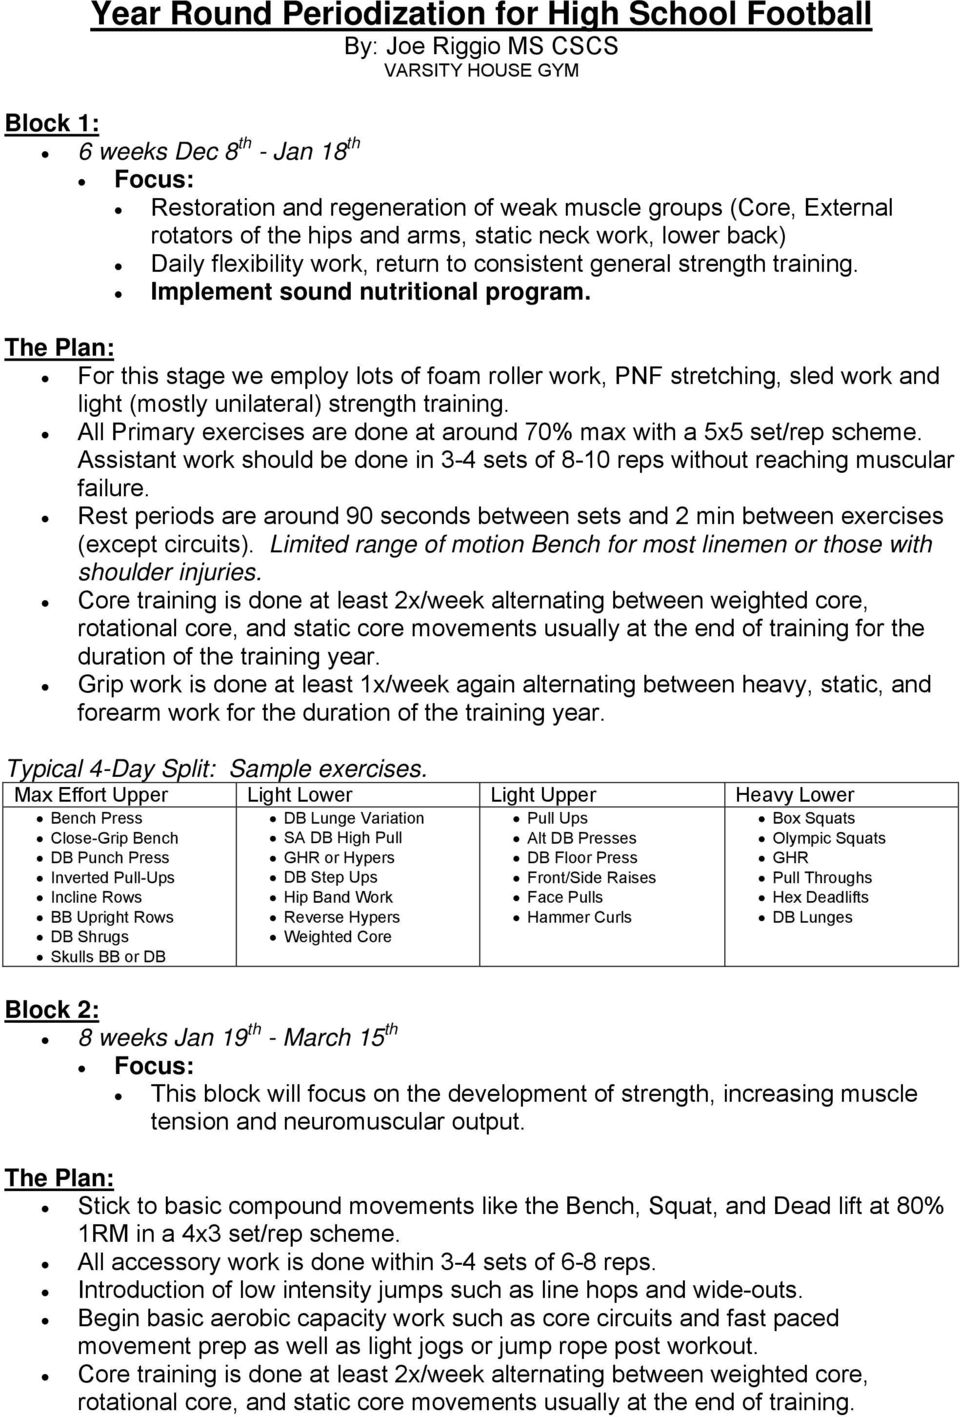 Year Round Periodization for High School Football By: Joe